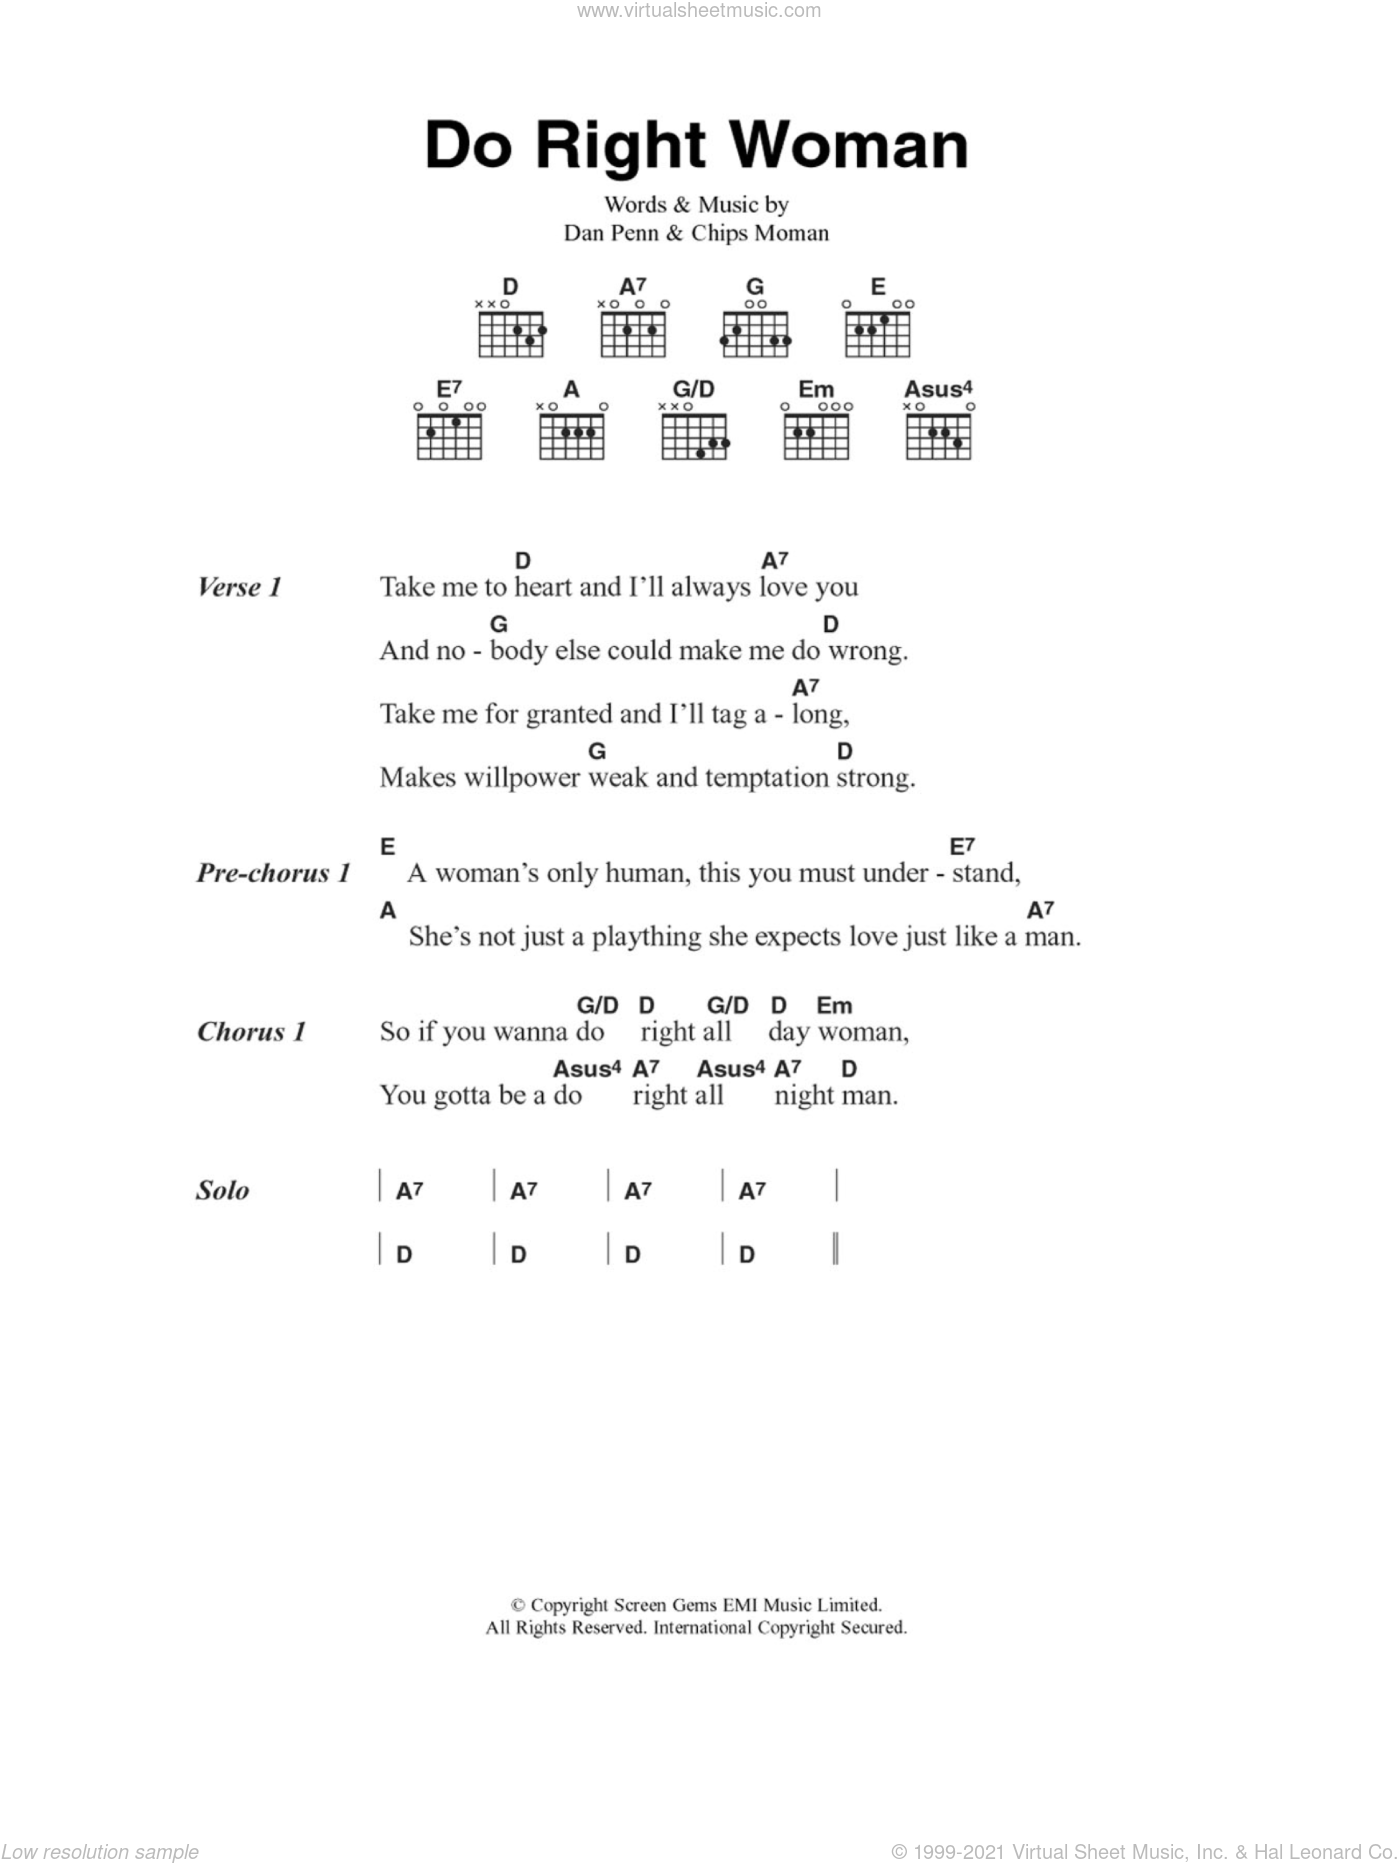 Do Right Woman sheet music for guitar (chords, lyrics, melody) by Dan Penn